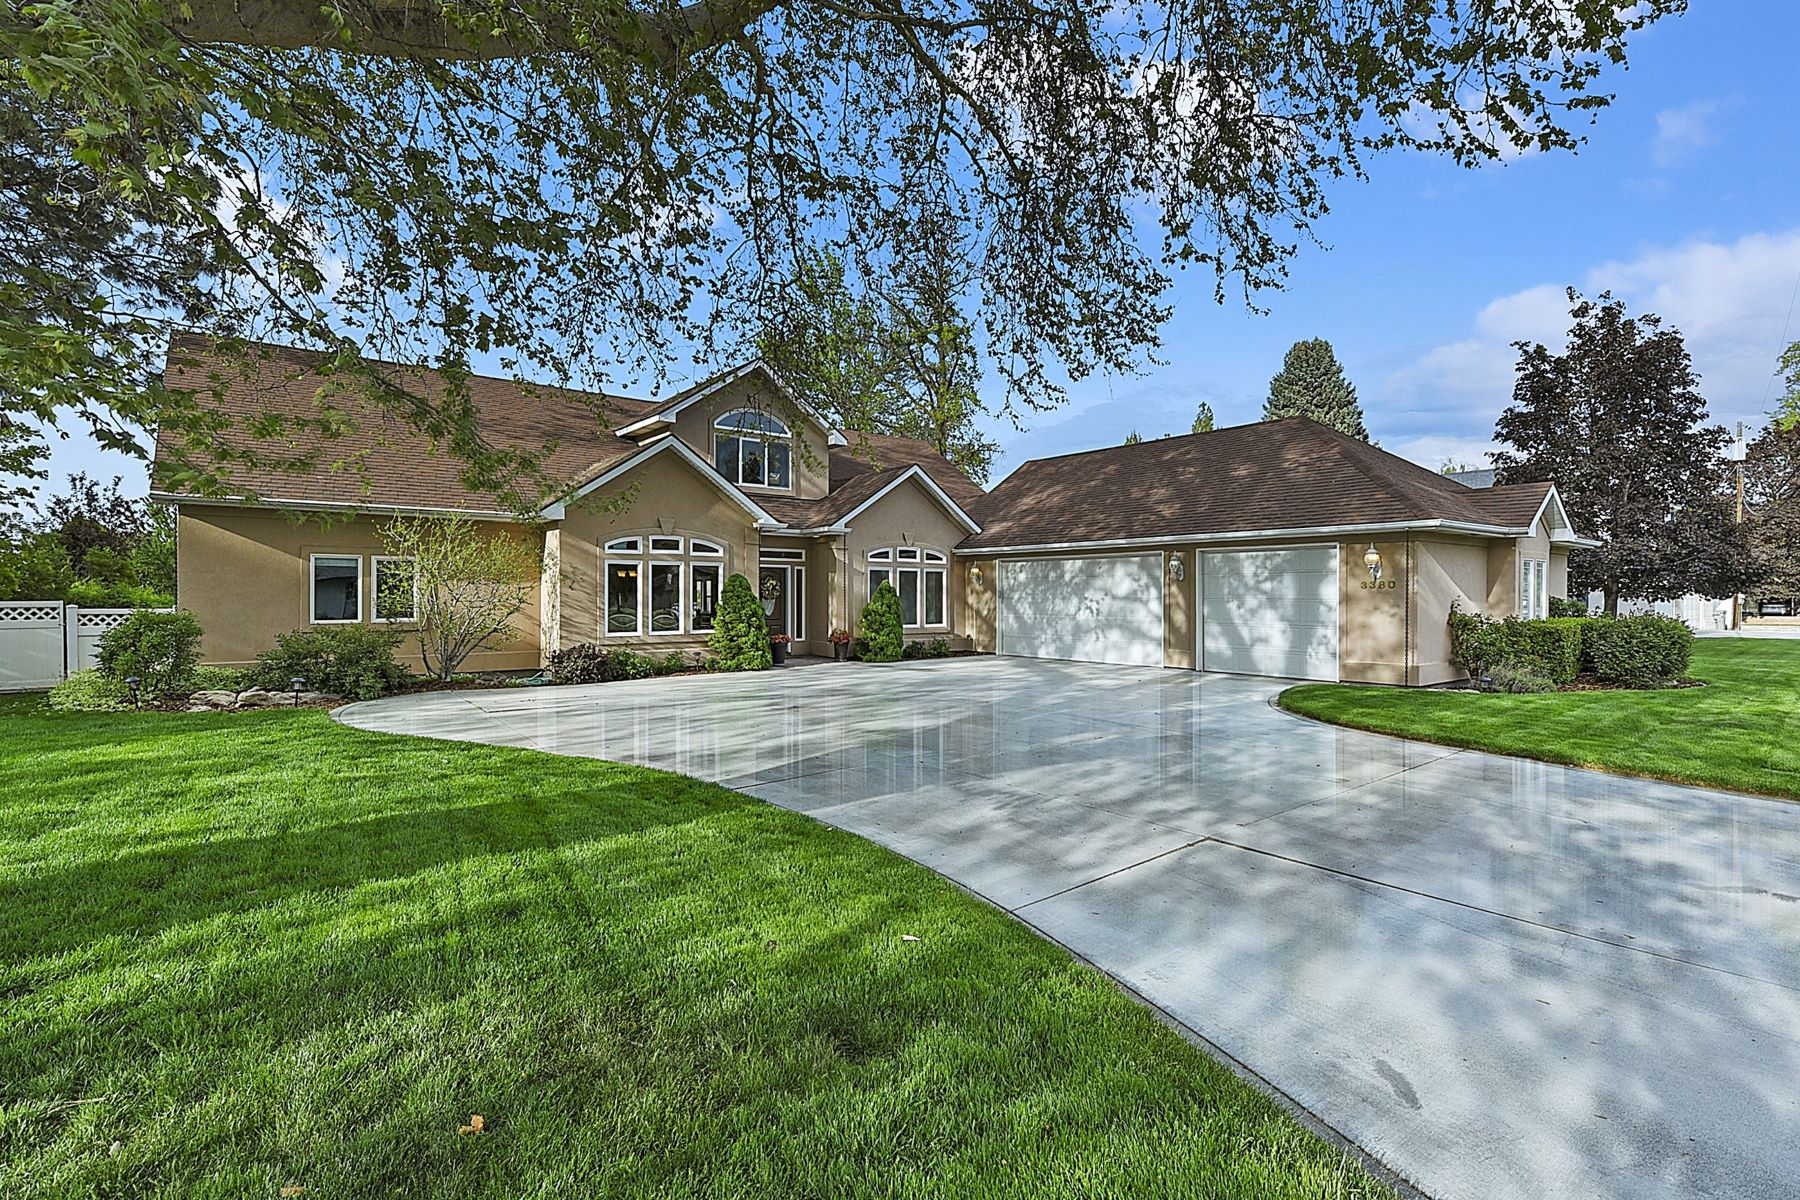 Single Family Homes for Sale at 3380 Mountain View Dr. Boise, Idaho 83704 United States